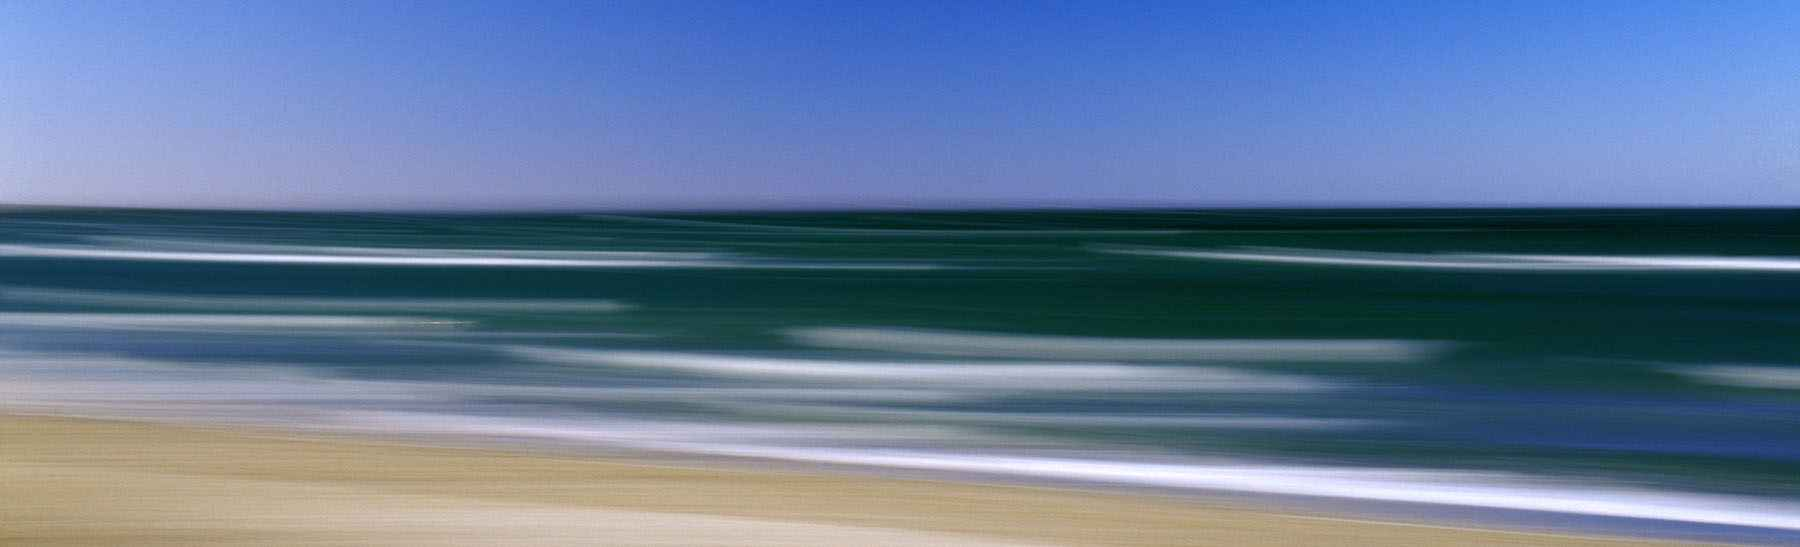 State Beach 2006 P1 by  Alison Shaw - Masterpiece Online